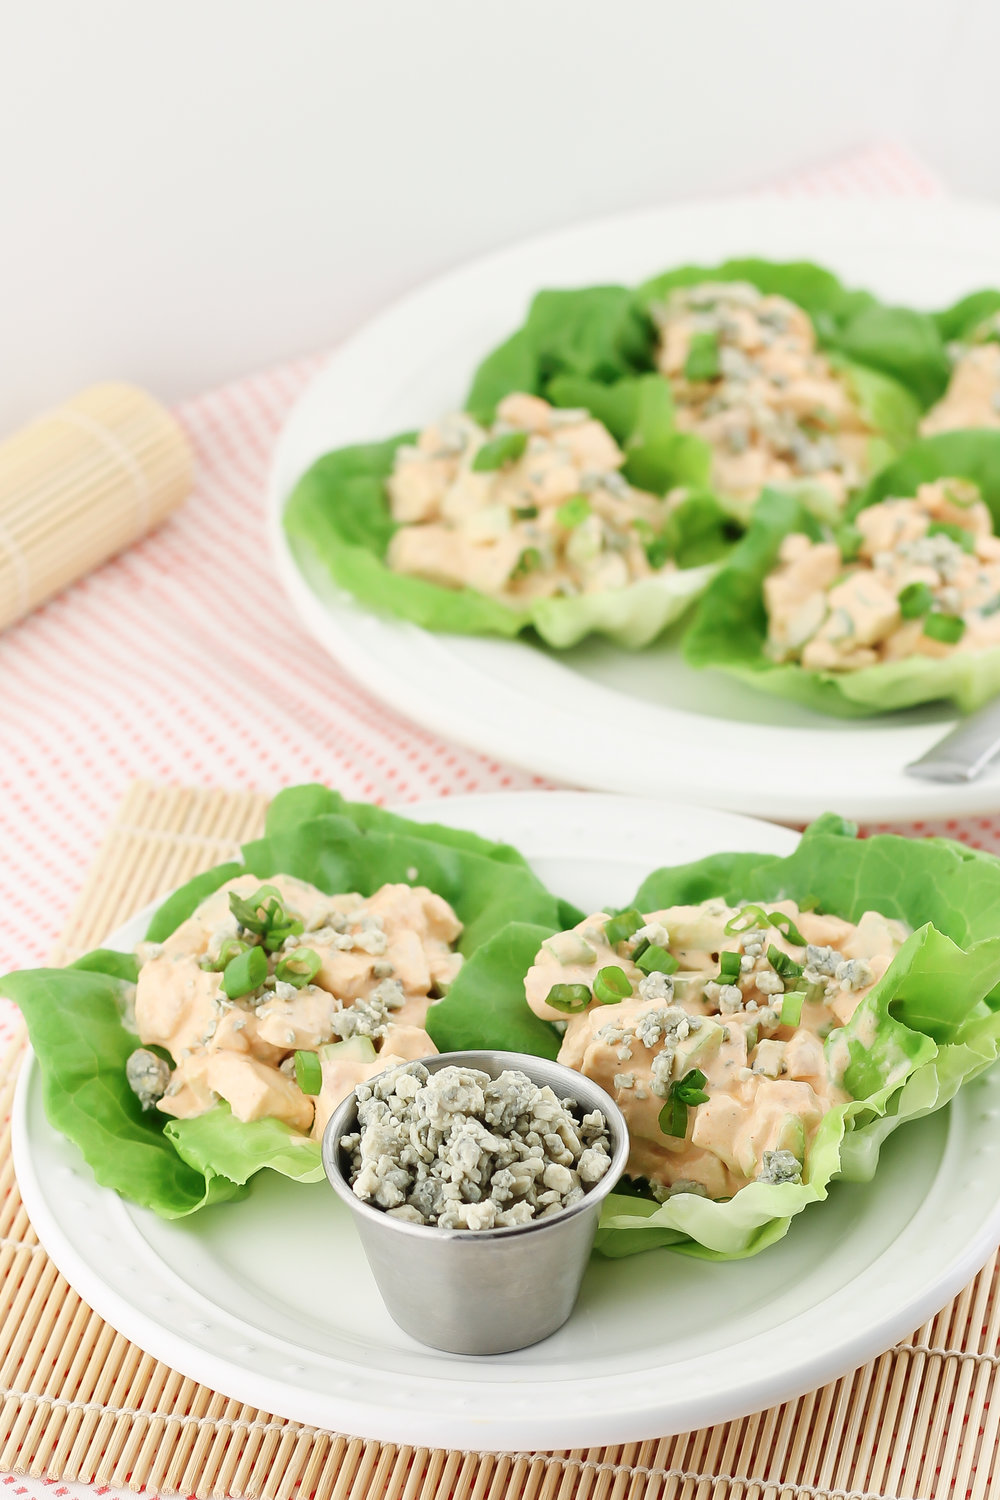 bleu cheese, family friendly, chicken salad, homemade mayo, paleo eats, paleo recipes, grain free, gluten free, real food recipes, summer, nutrition, healthy, healthy lifestyle,